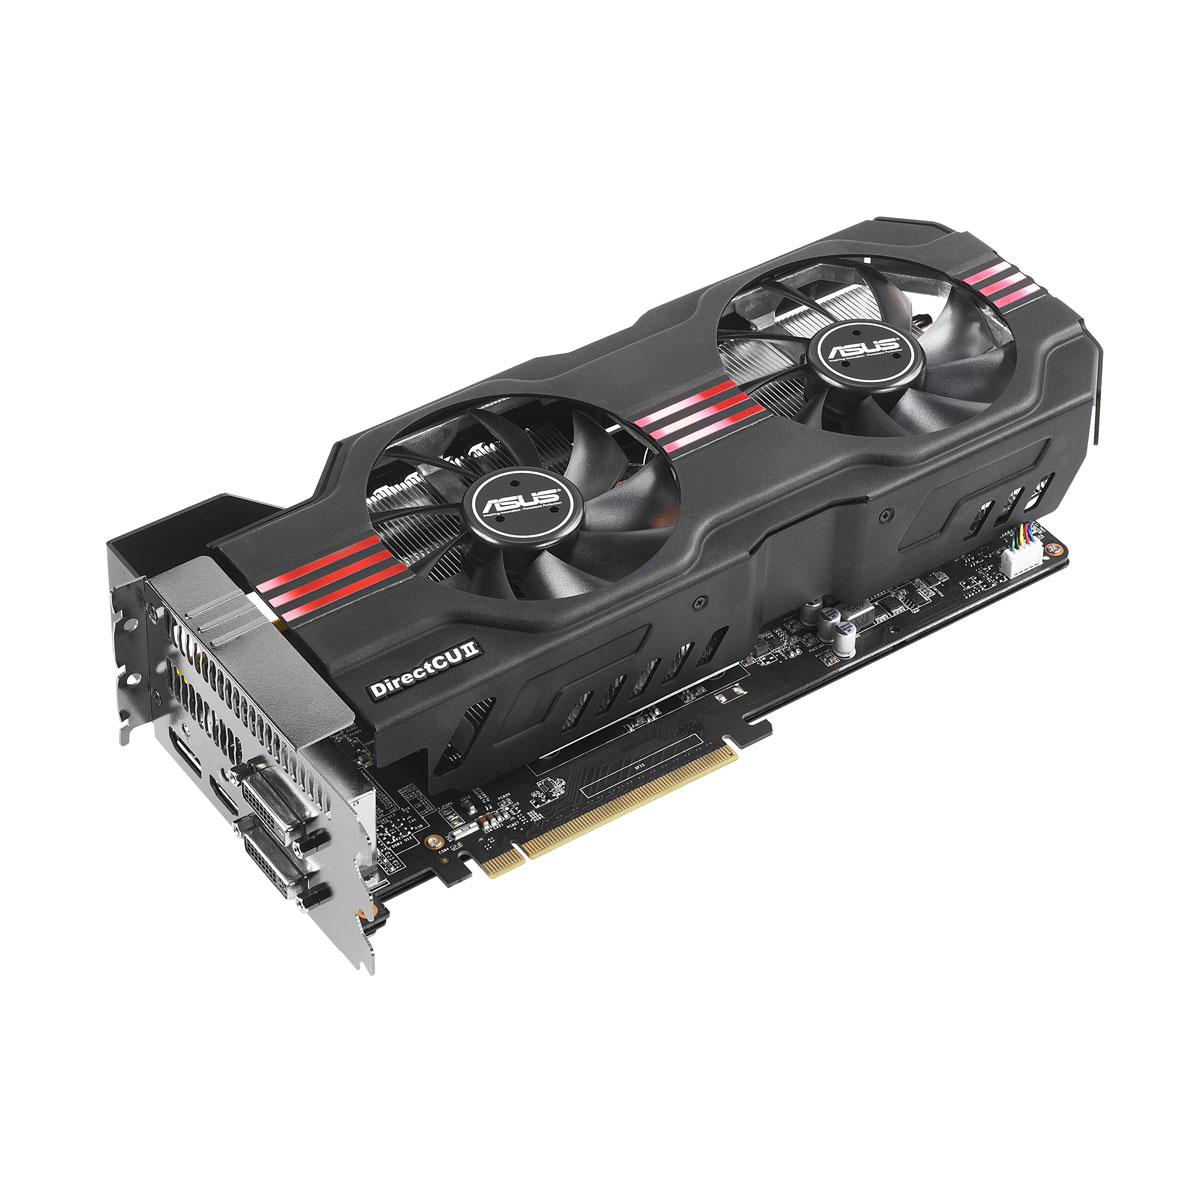 asus gtx680 dc2 2gd5 2 go carte graphique asus sur. Black Bedroom Furniture Sets. Home Design Ideas